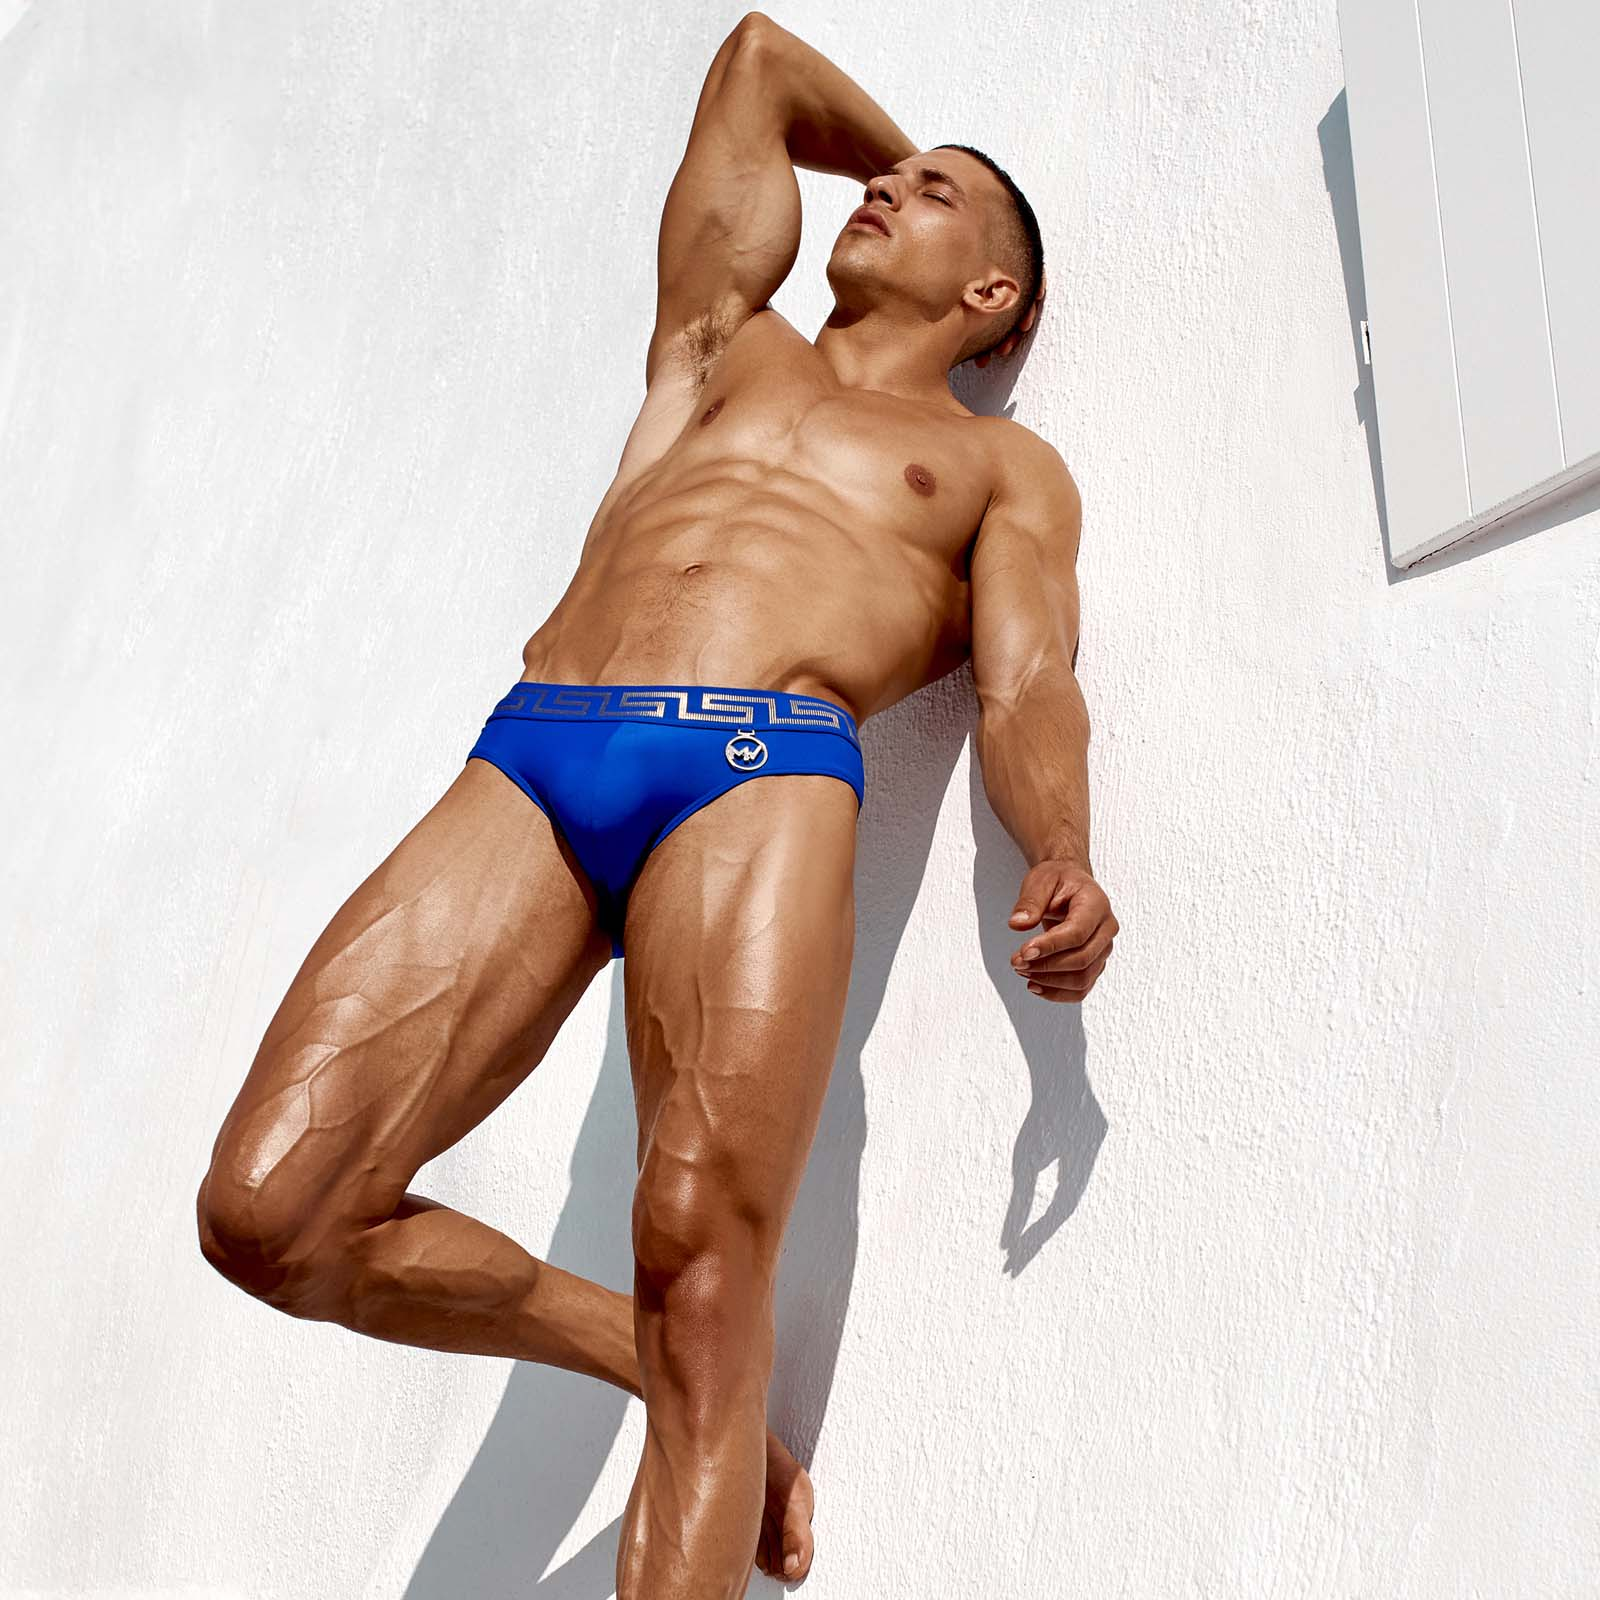 SwimBrief Modus Vivendi Glam Meander AS2113